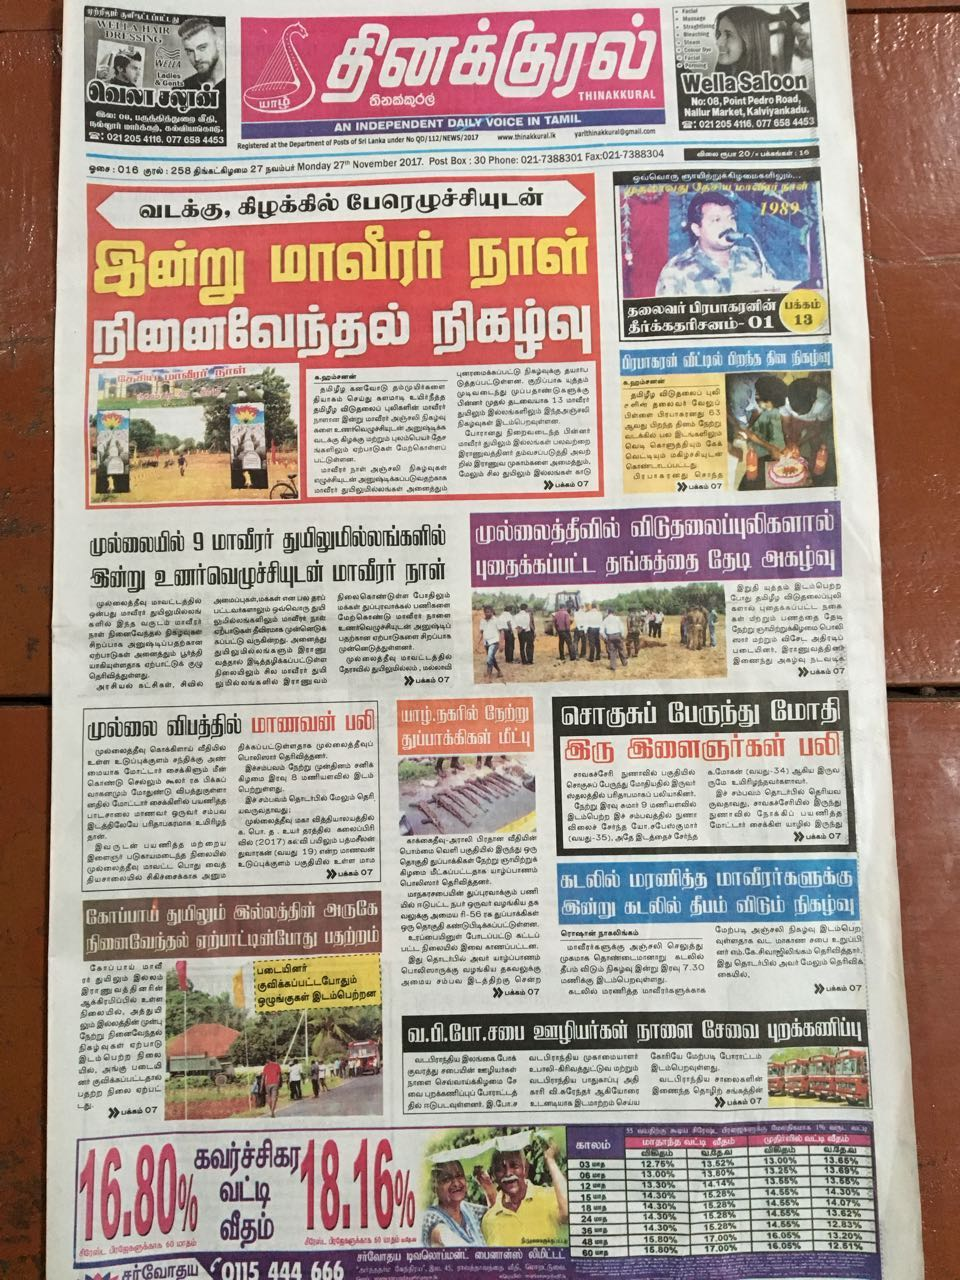 Tamil newspapers mark Maaveerar Naal on front pages | Tamil Guardian